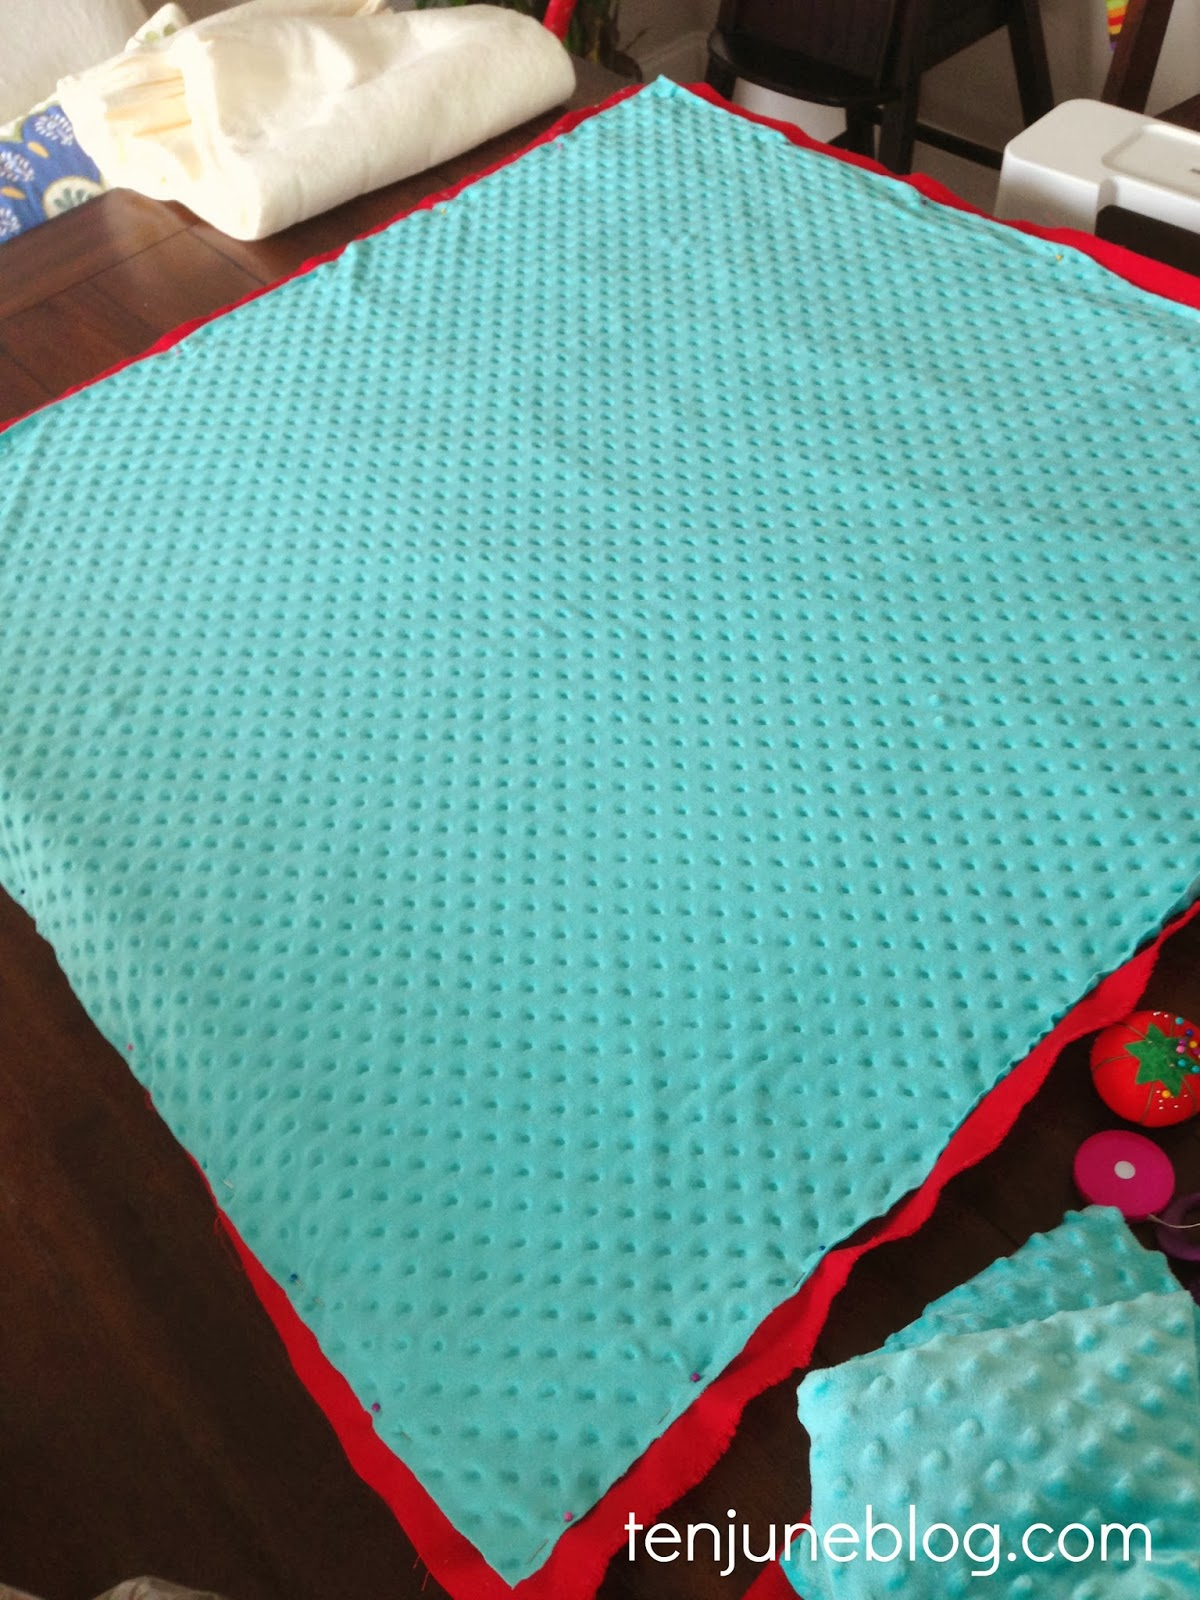 Ten June DIY Baby Play Mat Sewing Tutorial